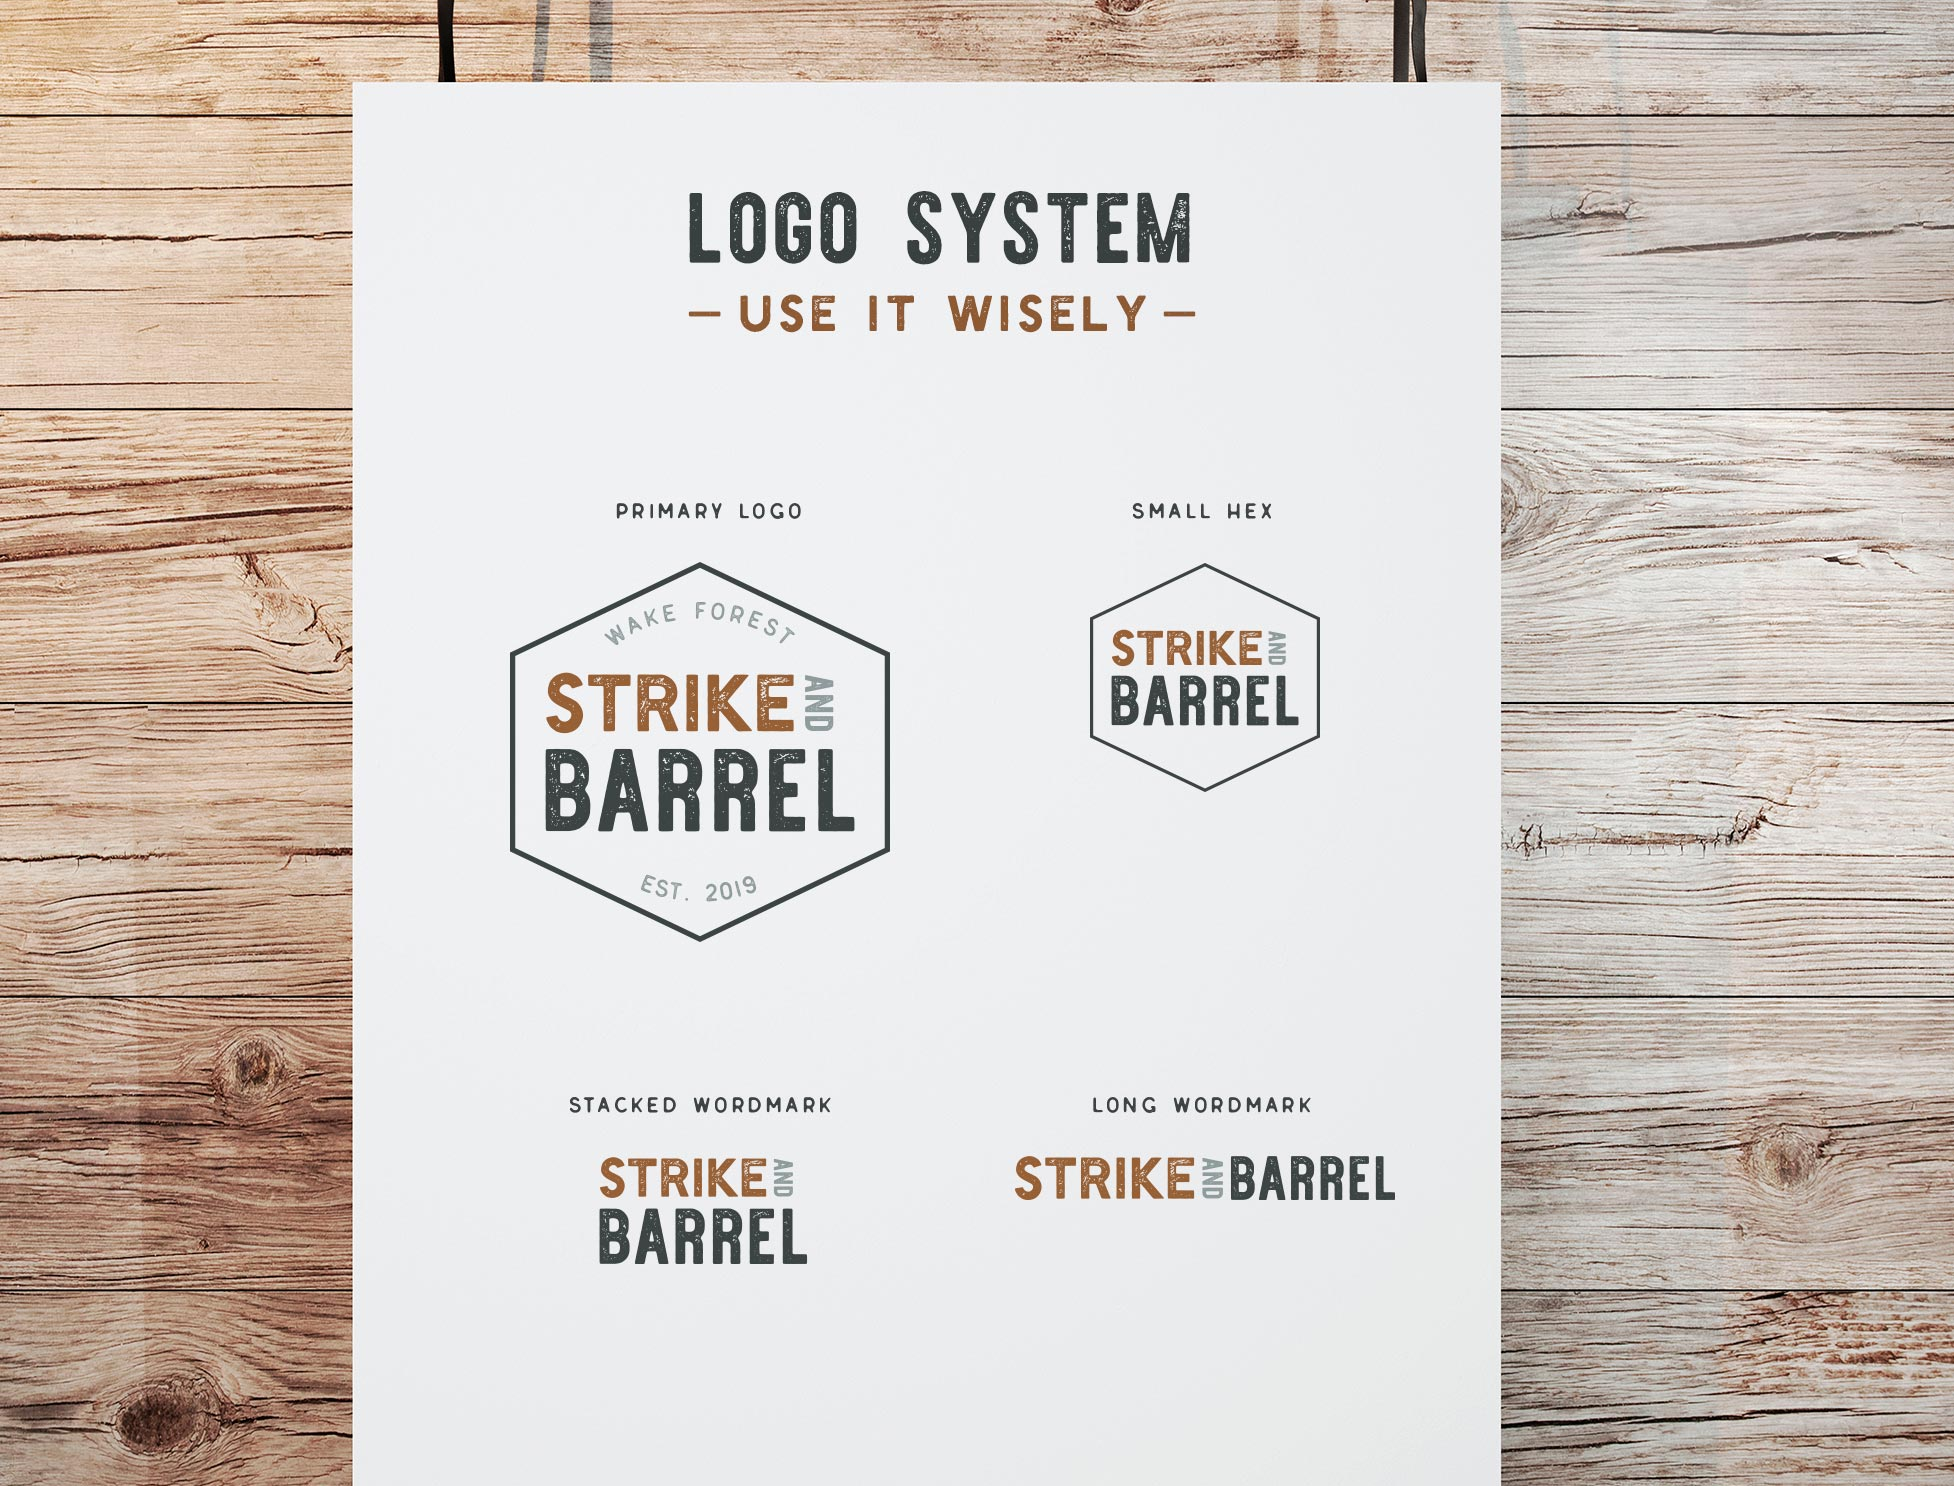 Work_StrikeandBarrel_logos